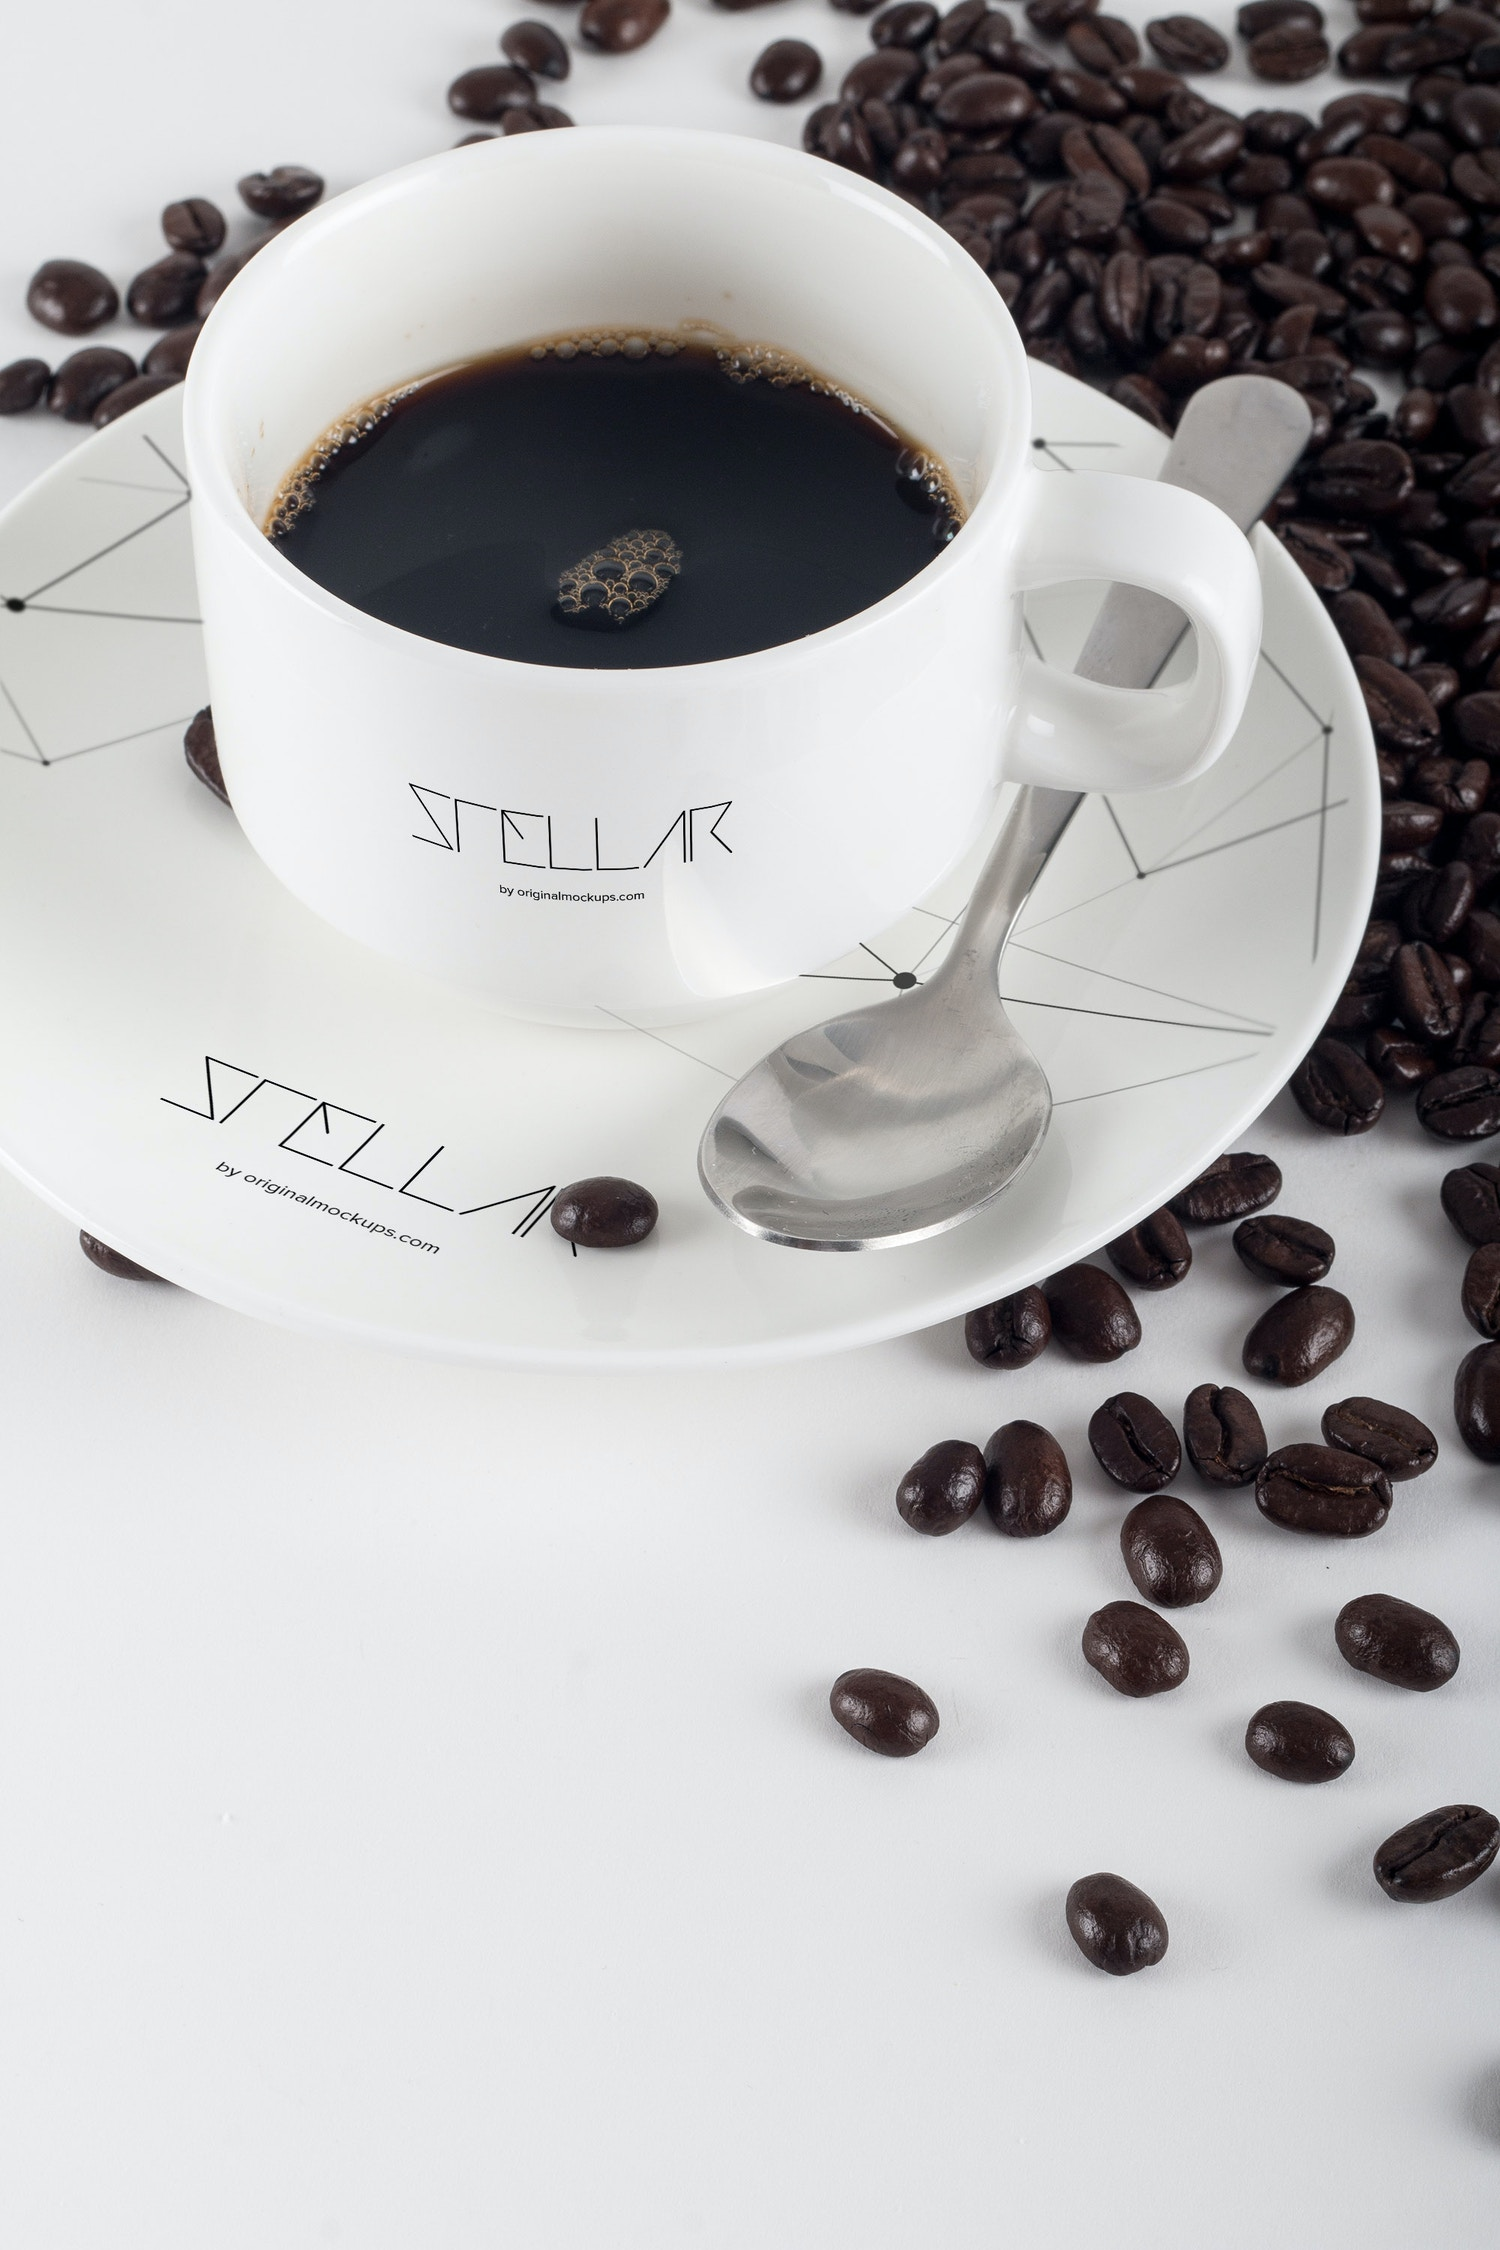 Coffee Cup Mockup 02 by Original Mockups on Original Mockups